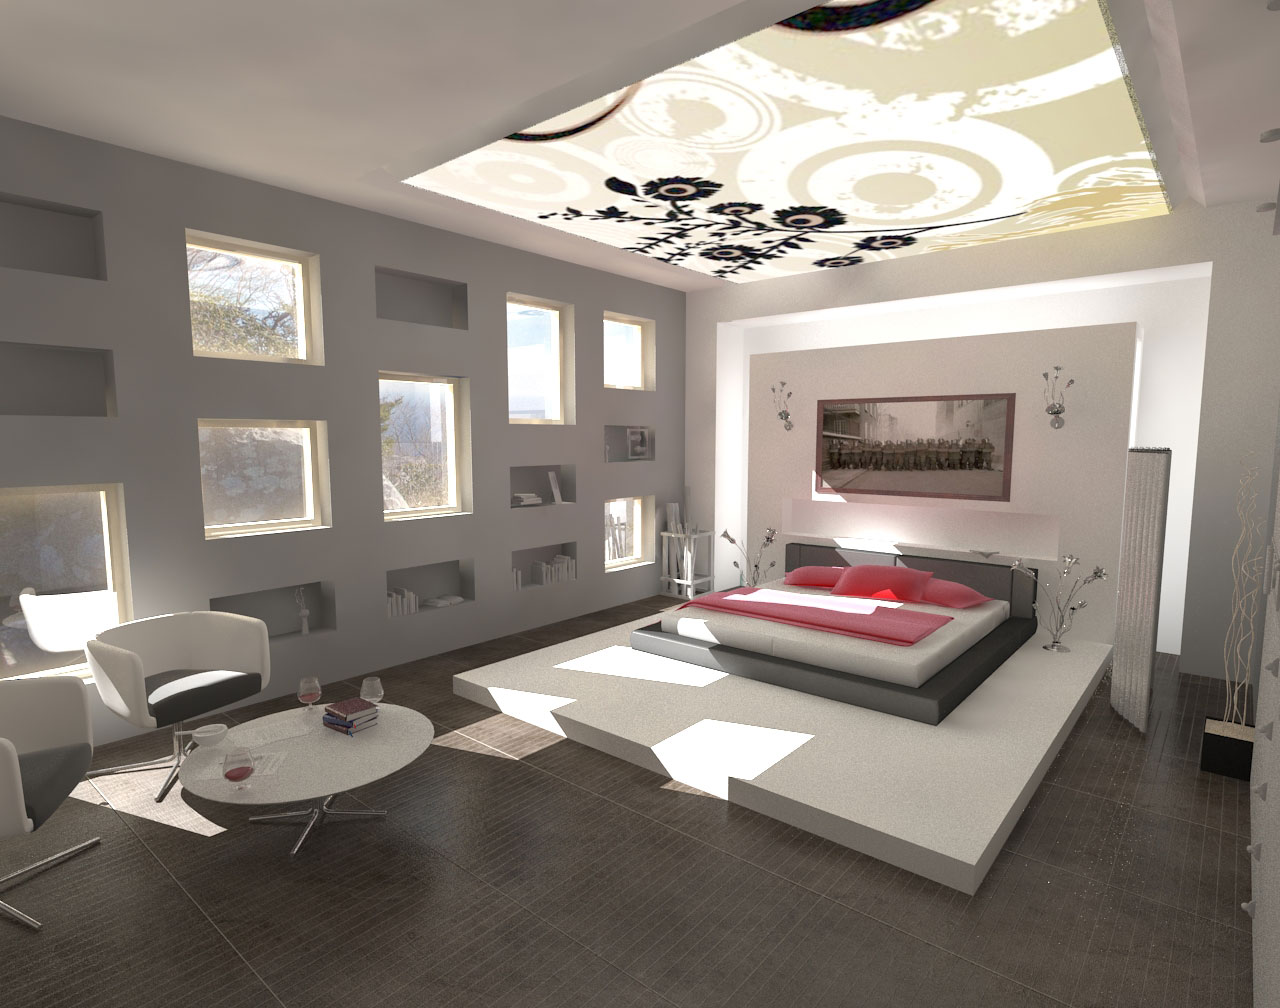 Stunning Modern Bedroom Interior Design Ideas 1280 x 1008 · 183 kB · jpeg